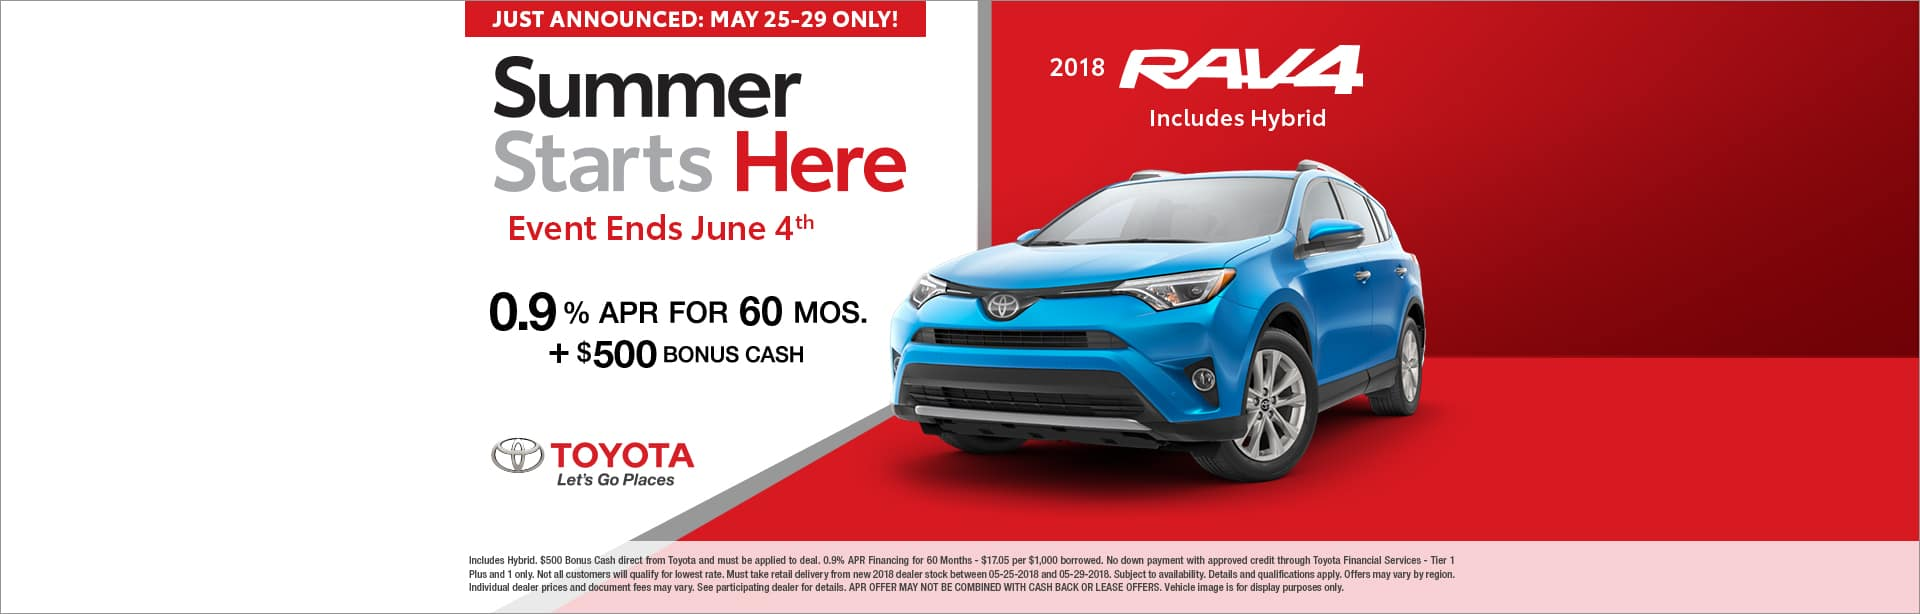 RAV4 MEMORIAL DAY SPECIAL OFFER CAIN TOYOTA NORTH CANTON OHIO